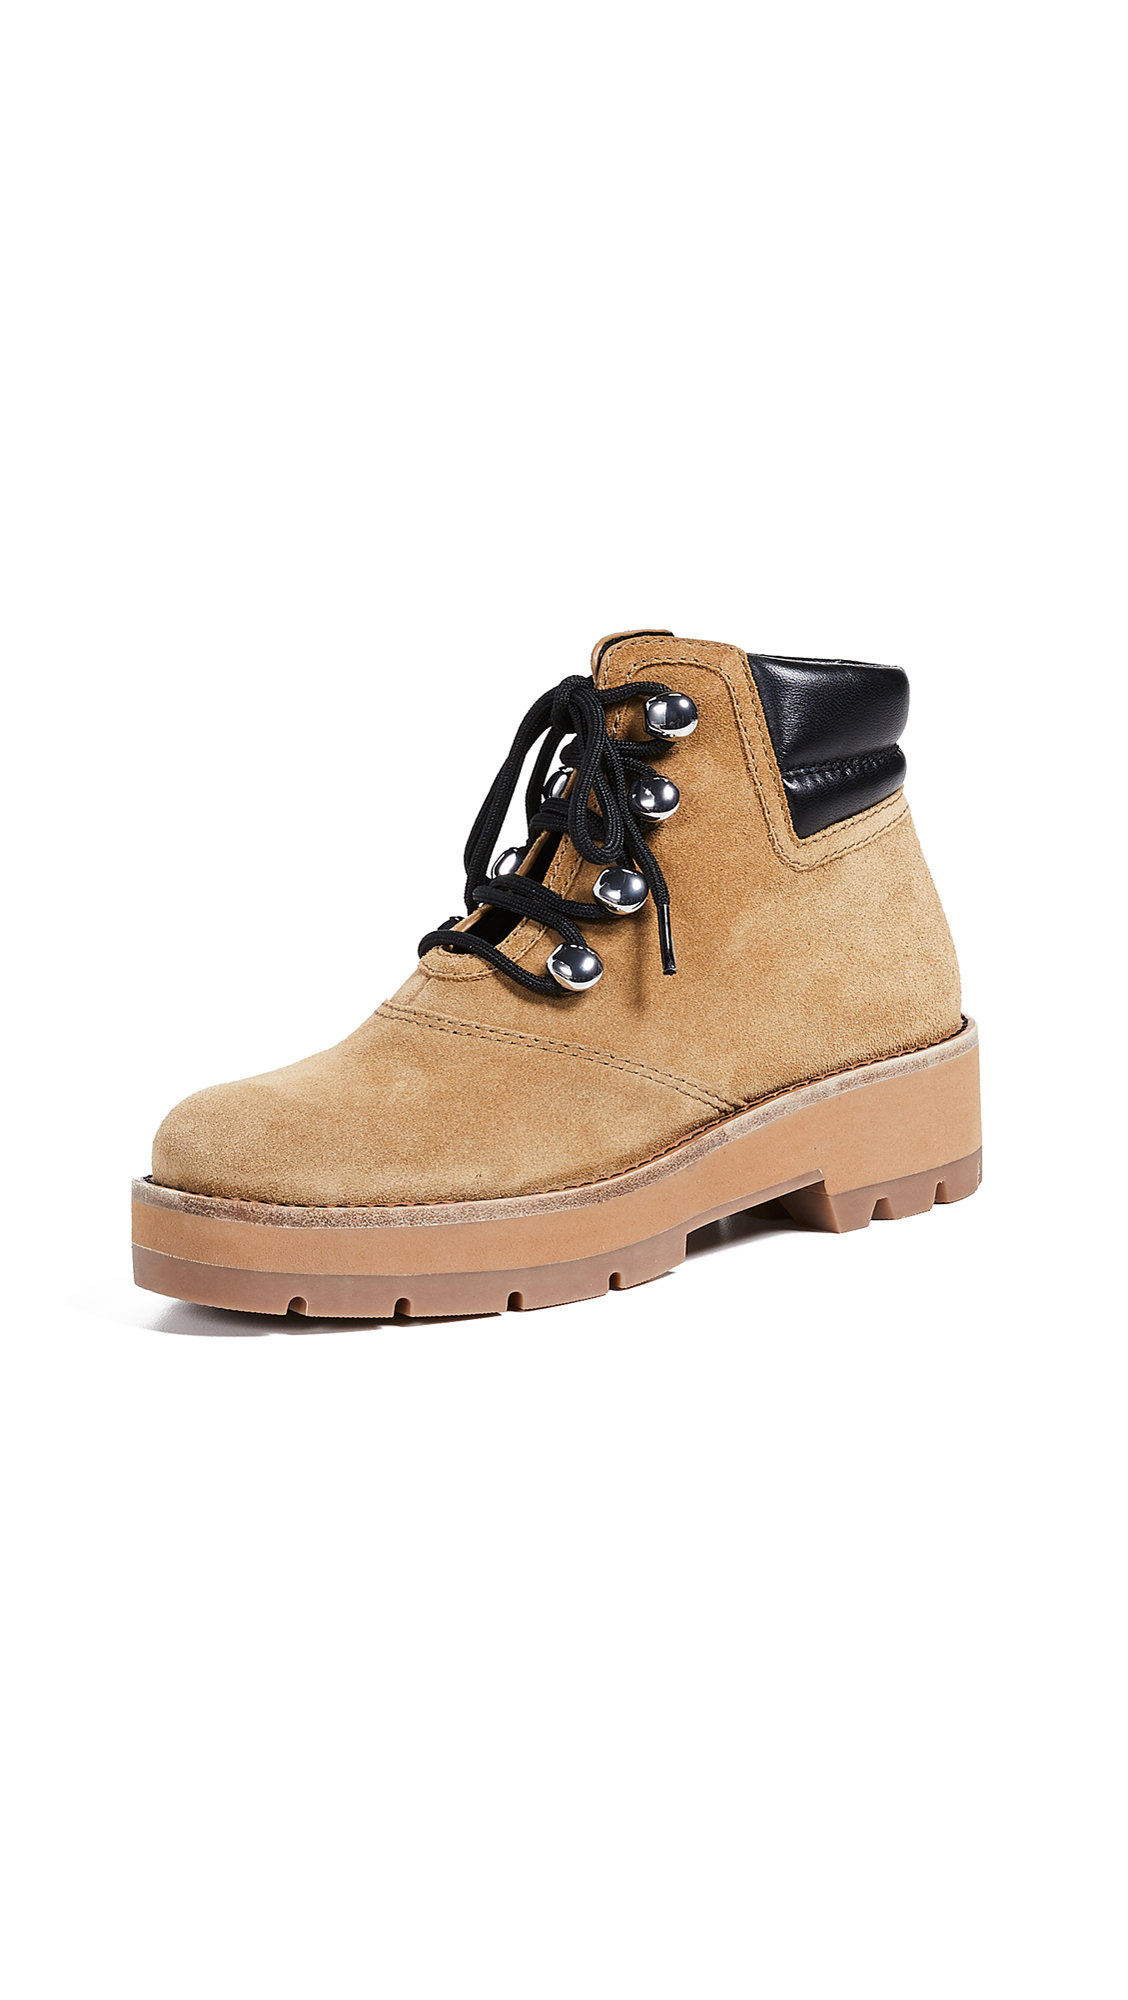 3.1 Phillip Lim Dylan Hiking Boots - Oak